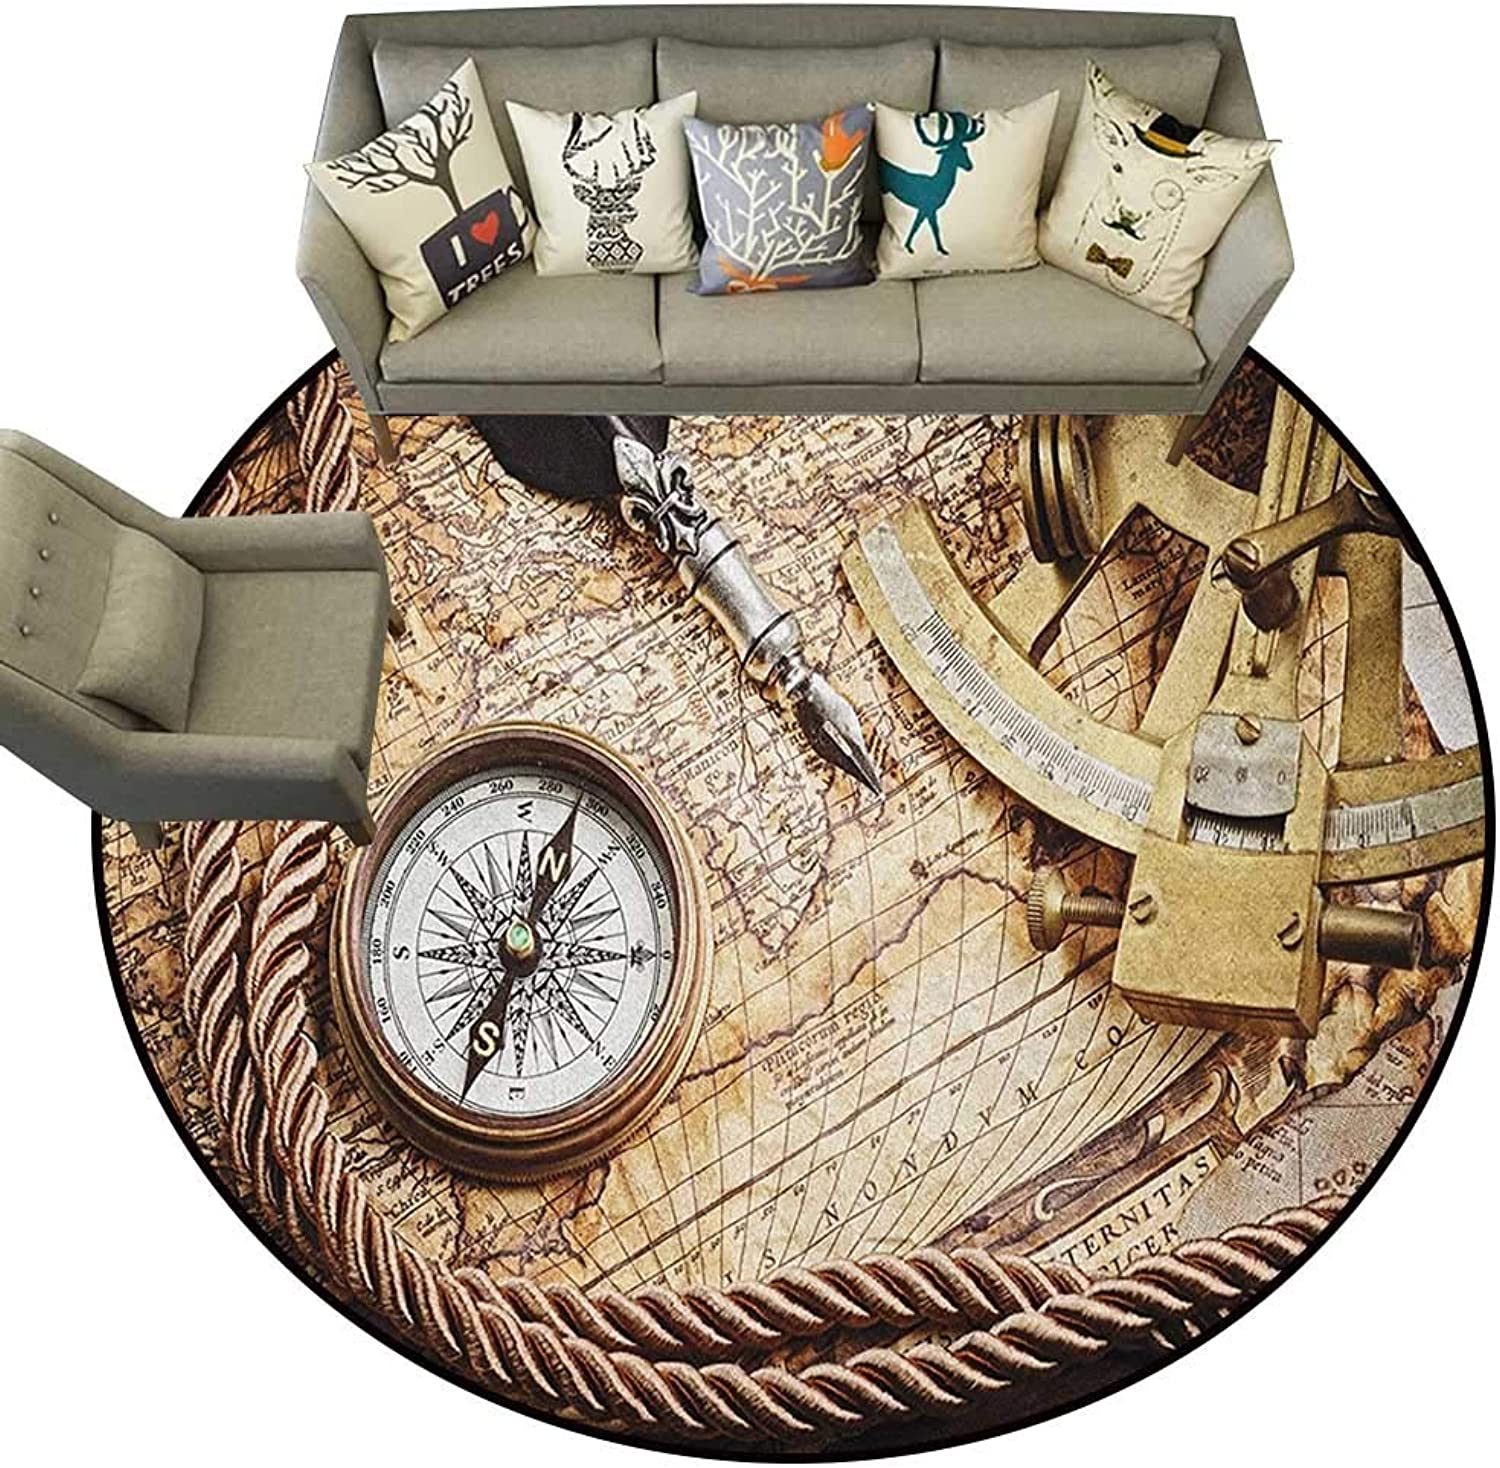 Compass,Personalized Floor mats Vintage Navigation Voyage Theme Lifestyle Image with Sextant and Compass Discovery Tools D48 Floor Mat Entrance Doormat